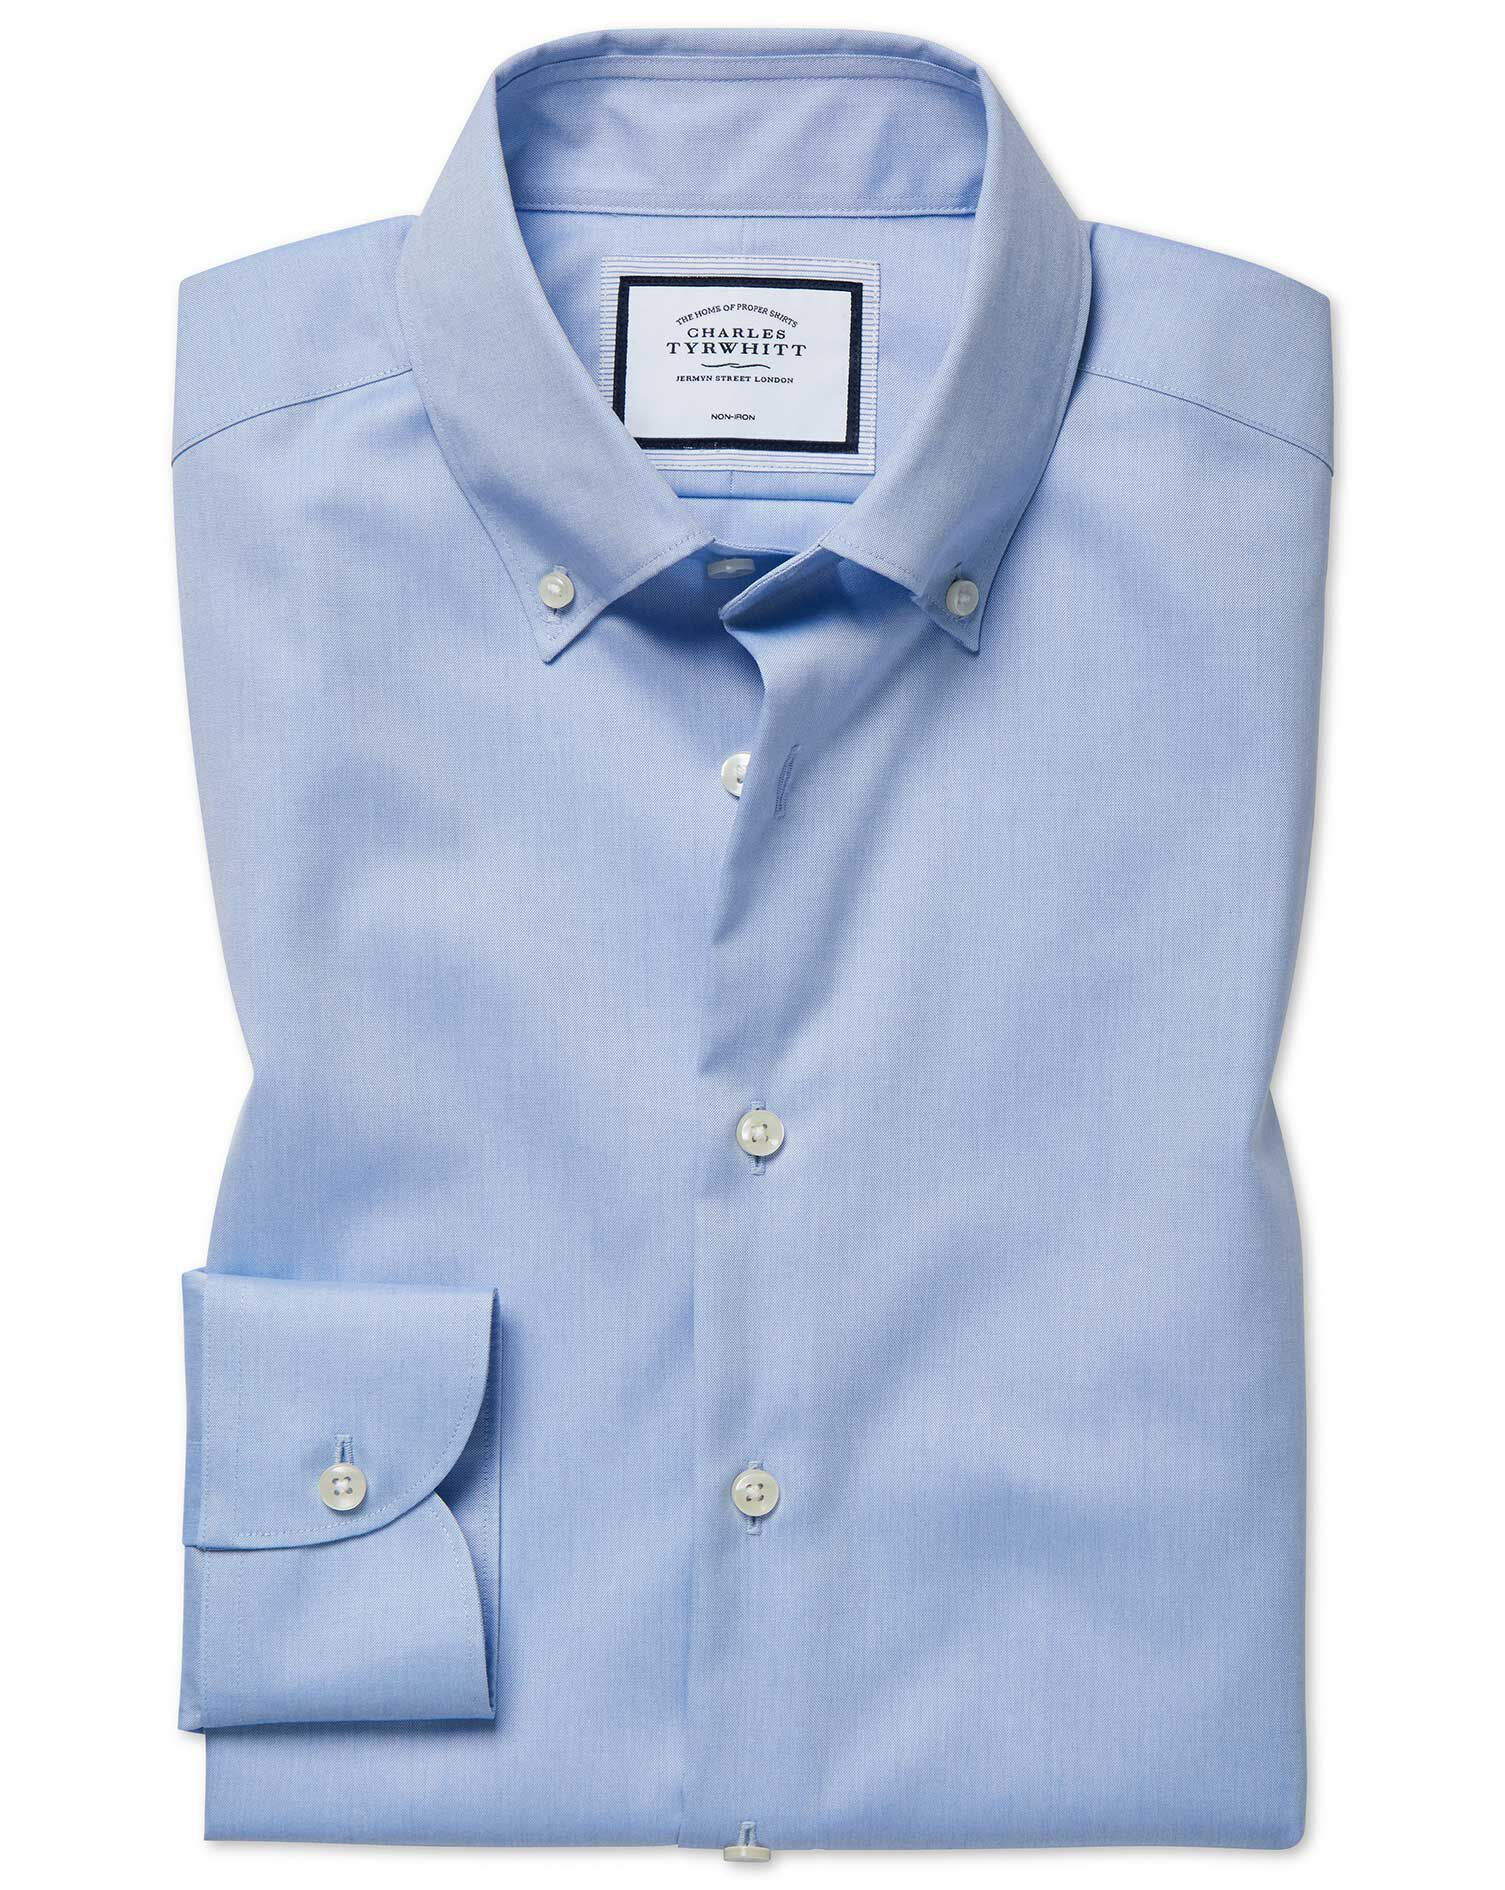 Extra Slim Fit Button-Down Business Casual Non-Iron Sky Blue Cotton Formal Shirt Single Cuff Size 17